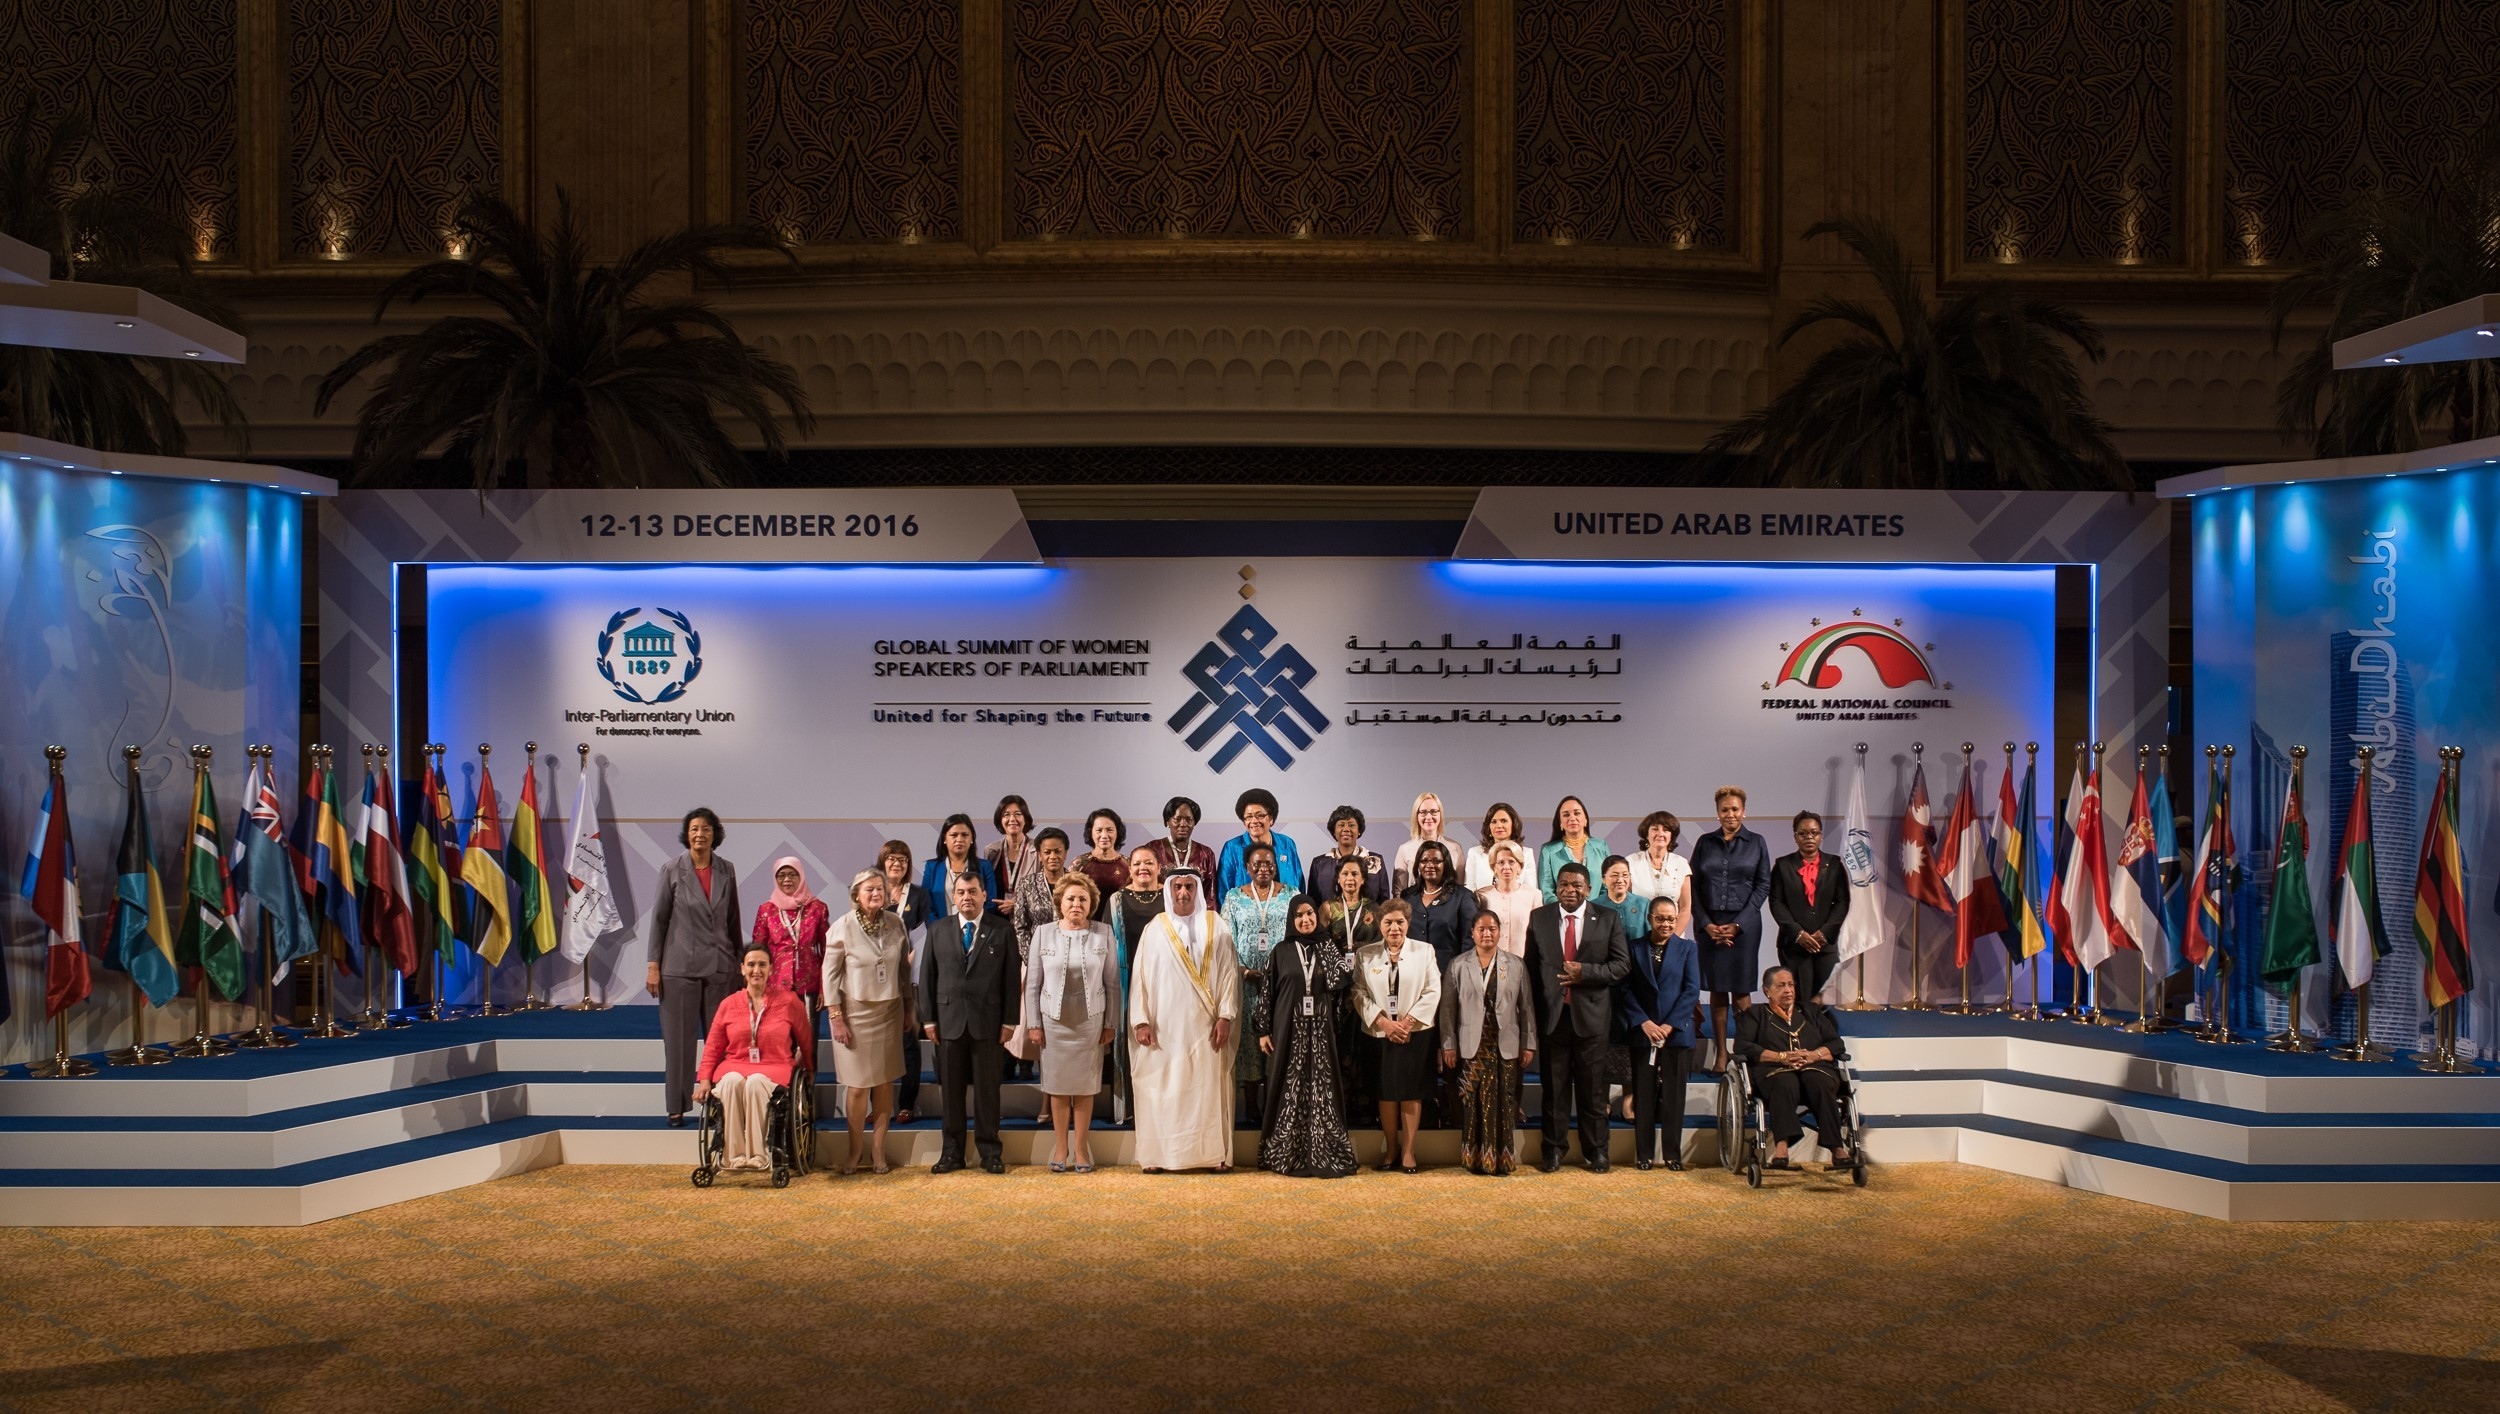 ad_group_shot_at_global_summit_of_women_speakers_photo-_me_newswire